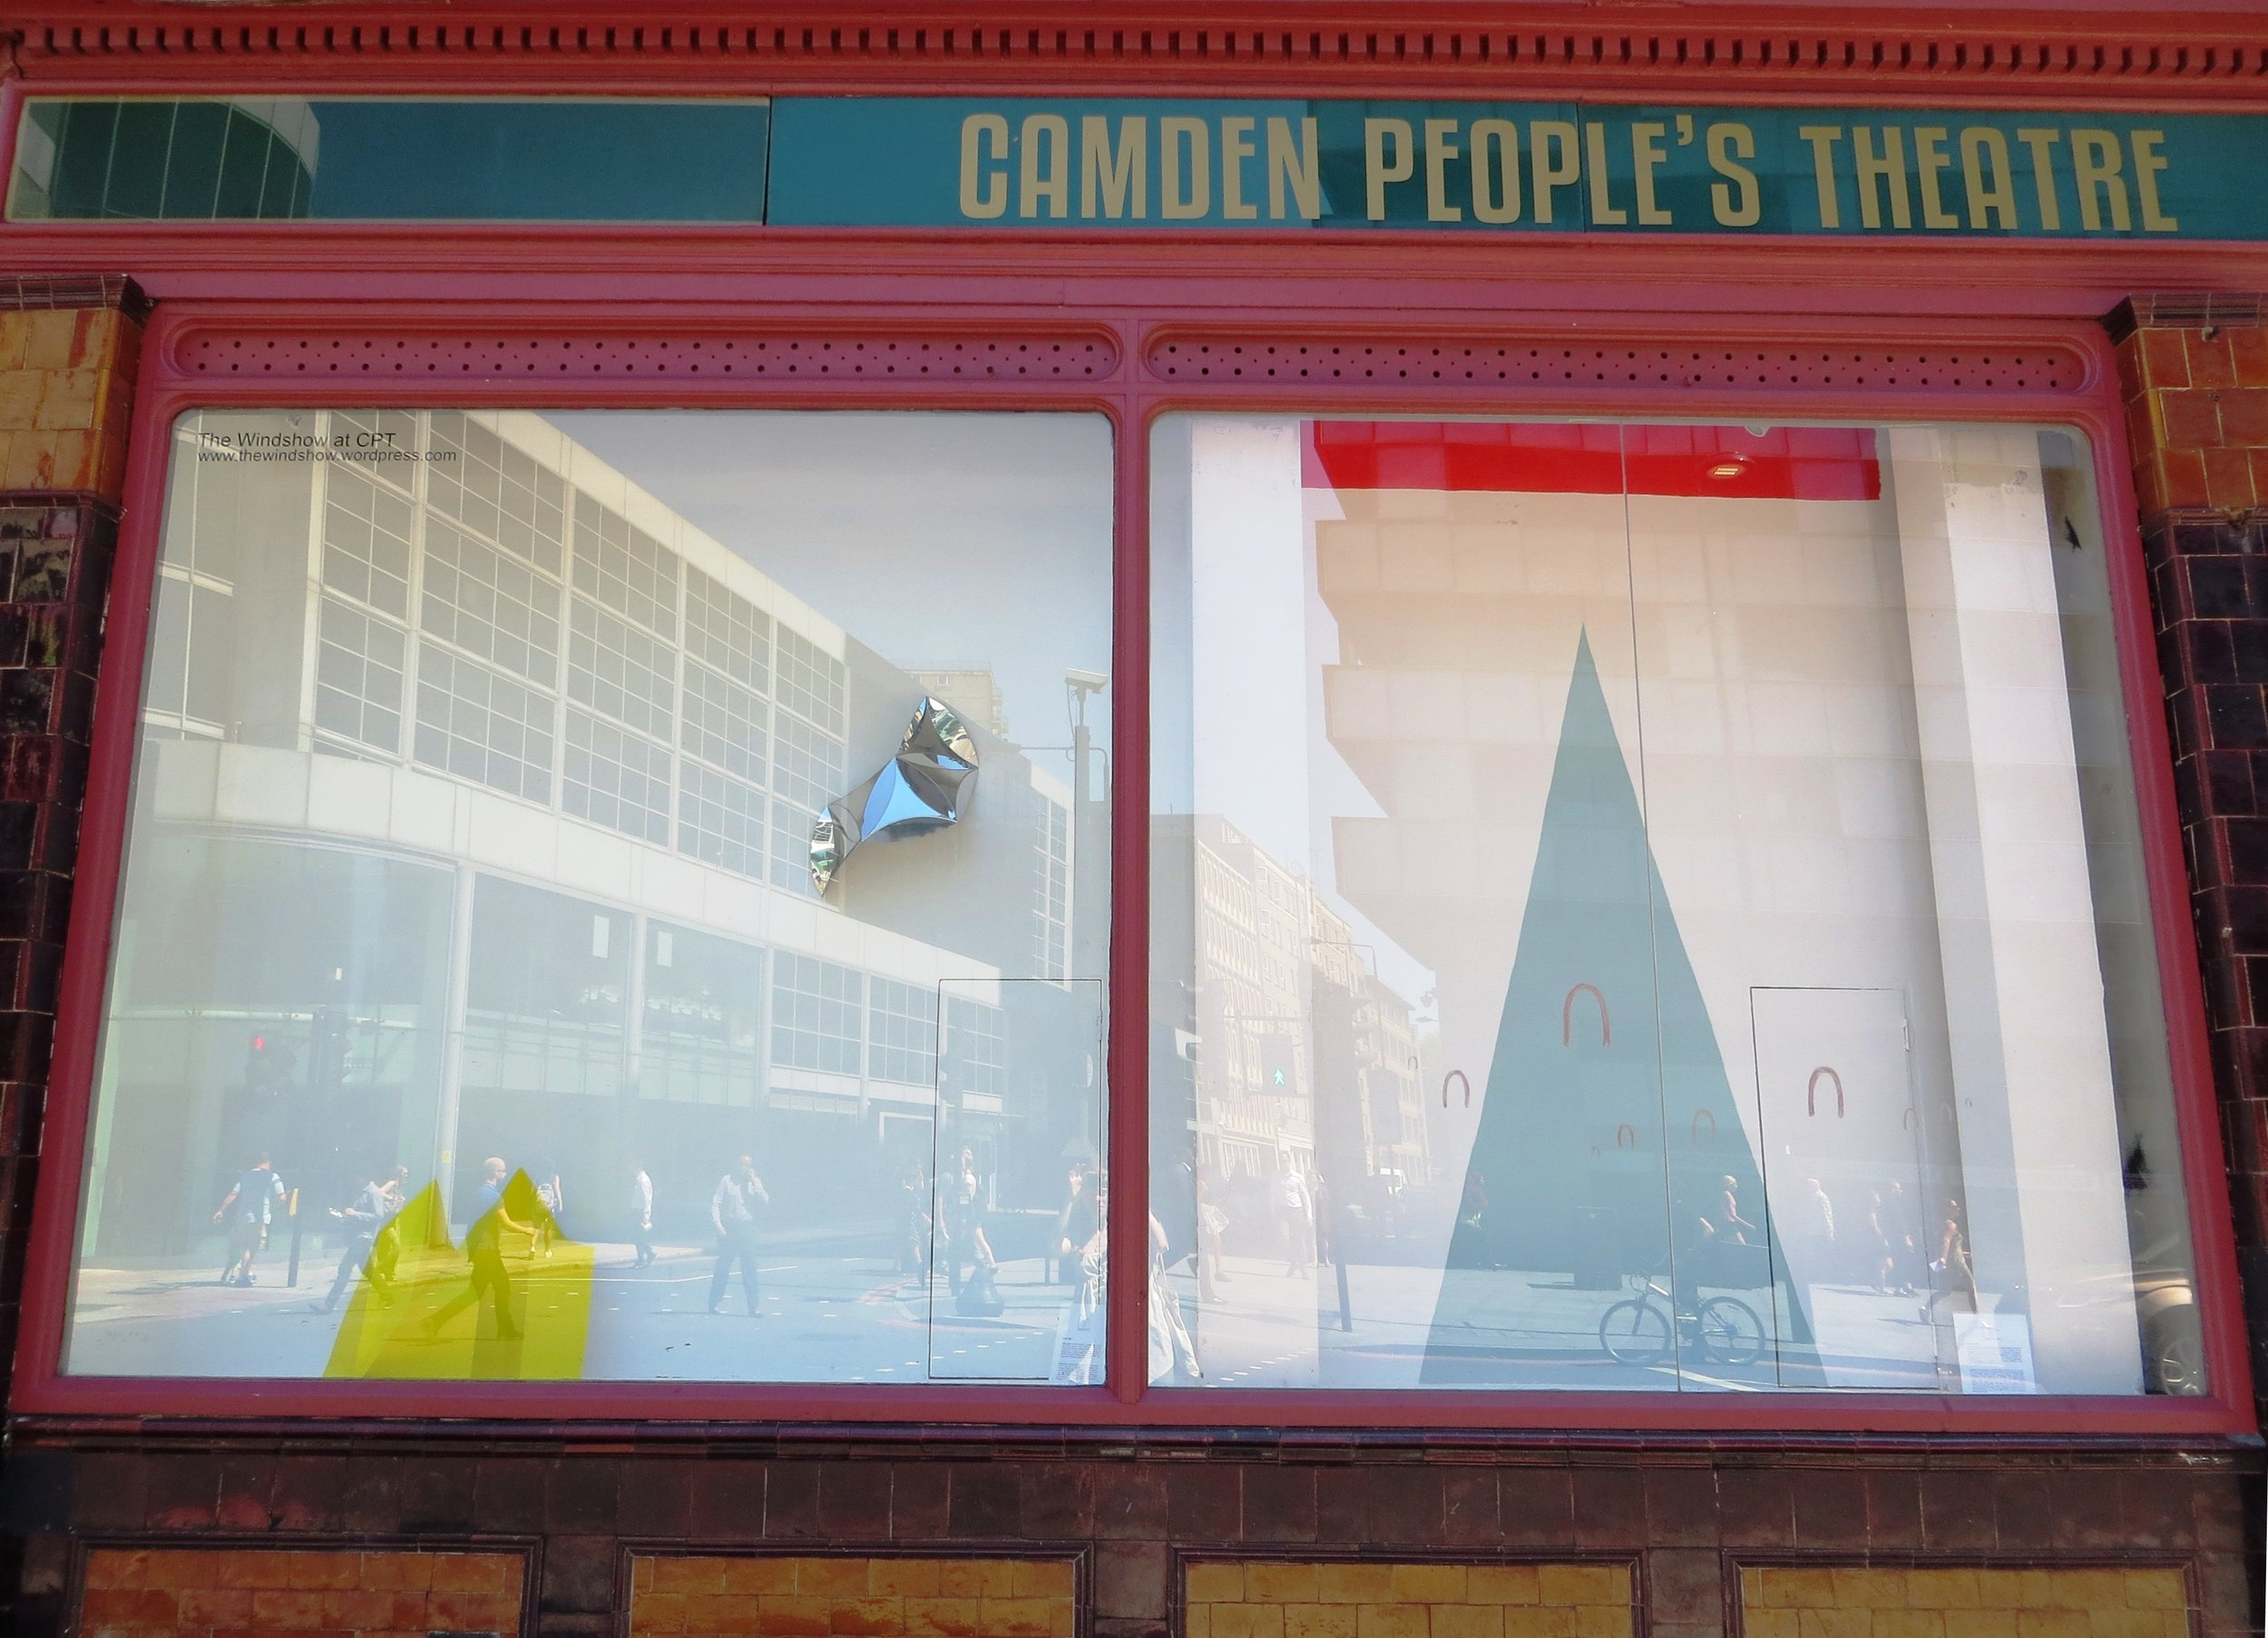 Summer 2016. Brigitte Parusel (left) and Hannah Luxton (right). Camden Peoples Theatre windows.